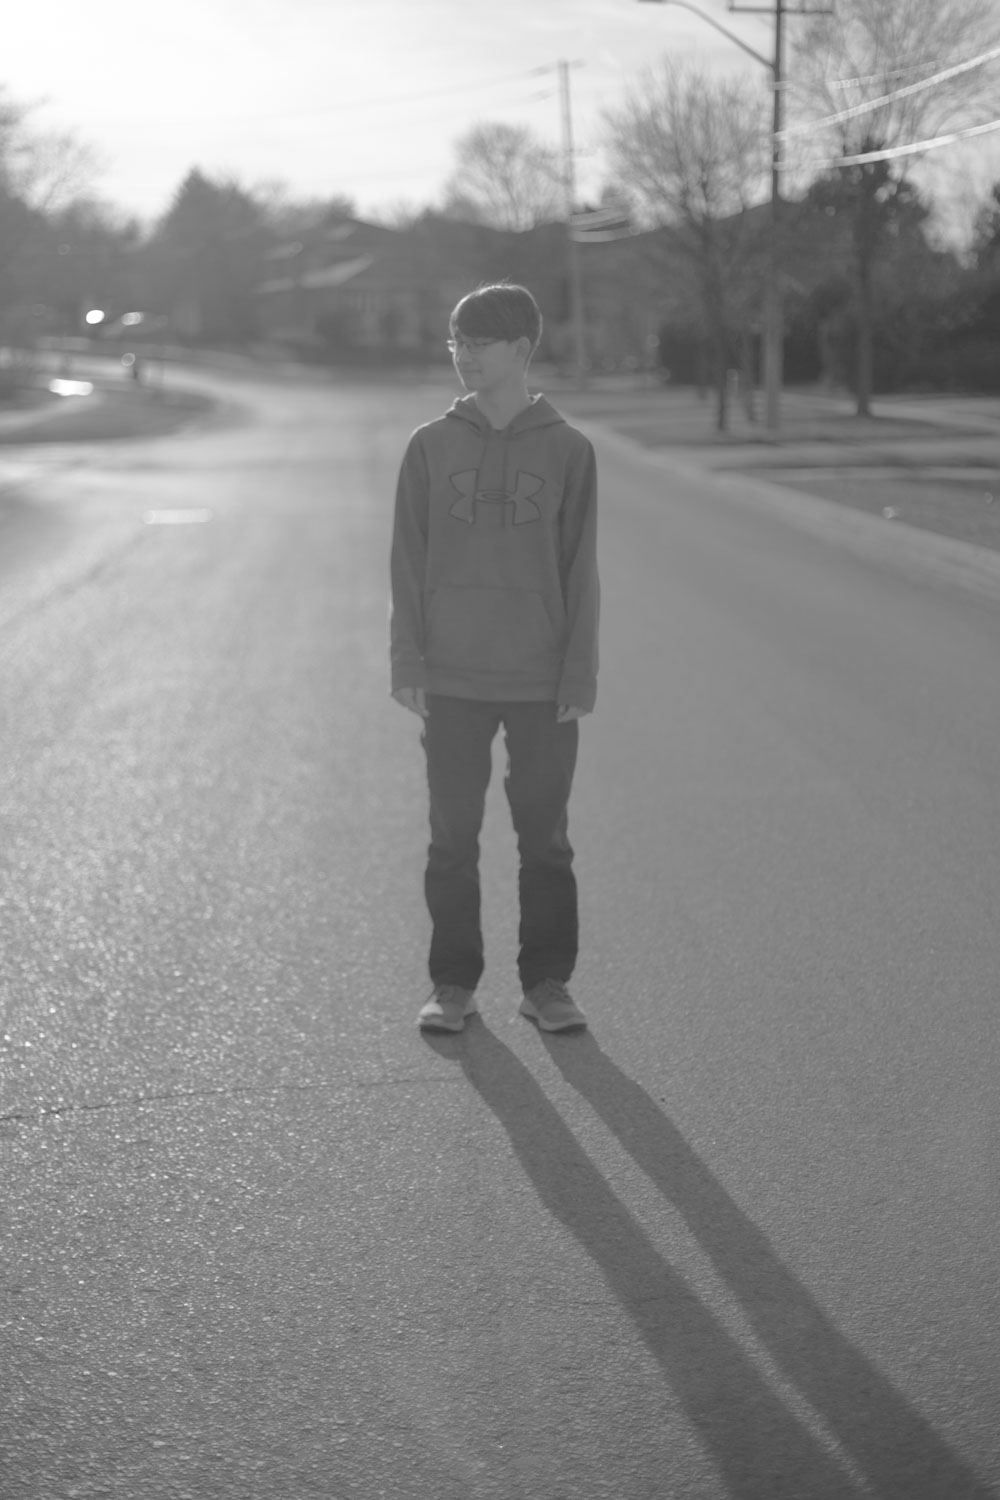 How to Use Low Graphic Style as a Compositional Tool - b/w of a boy in the road